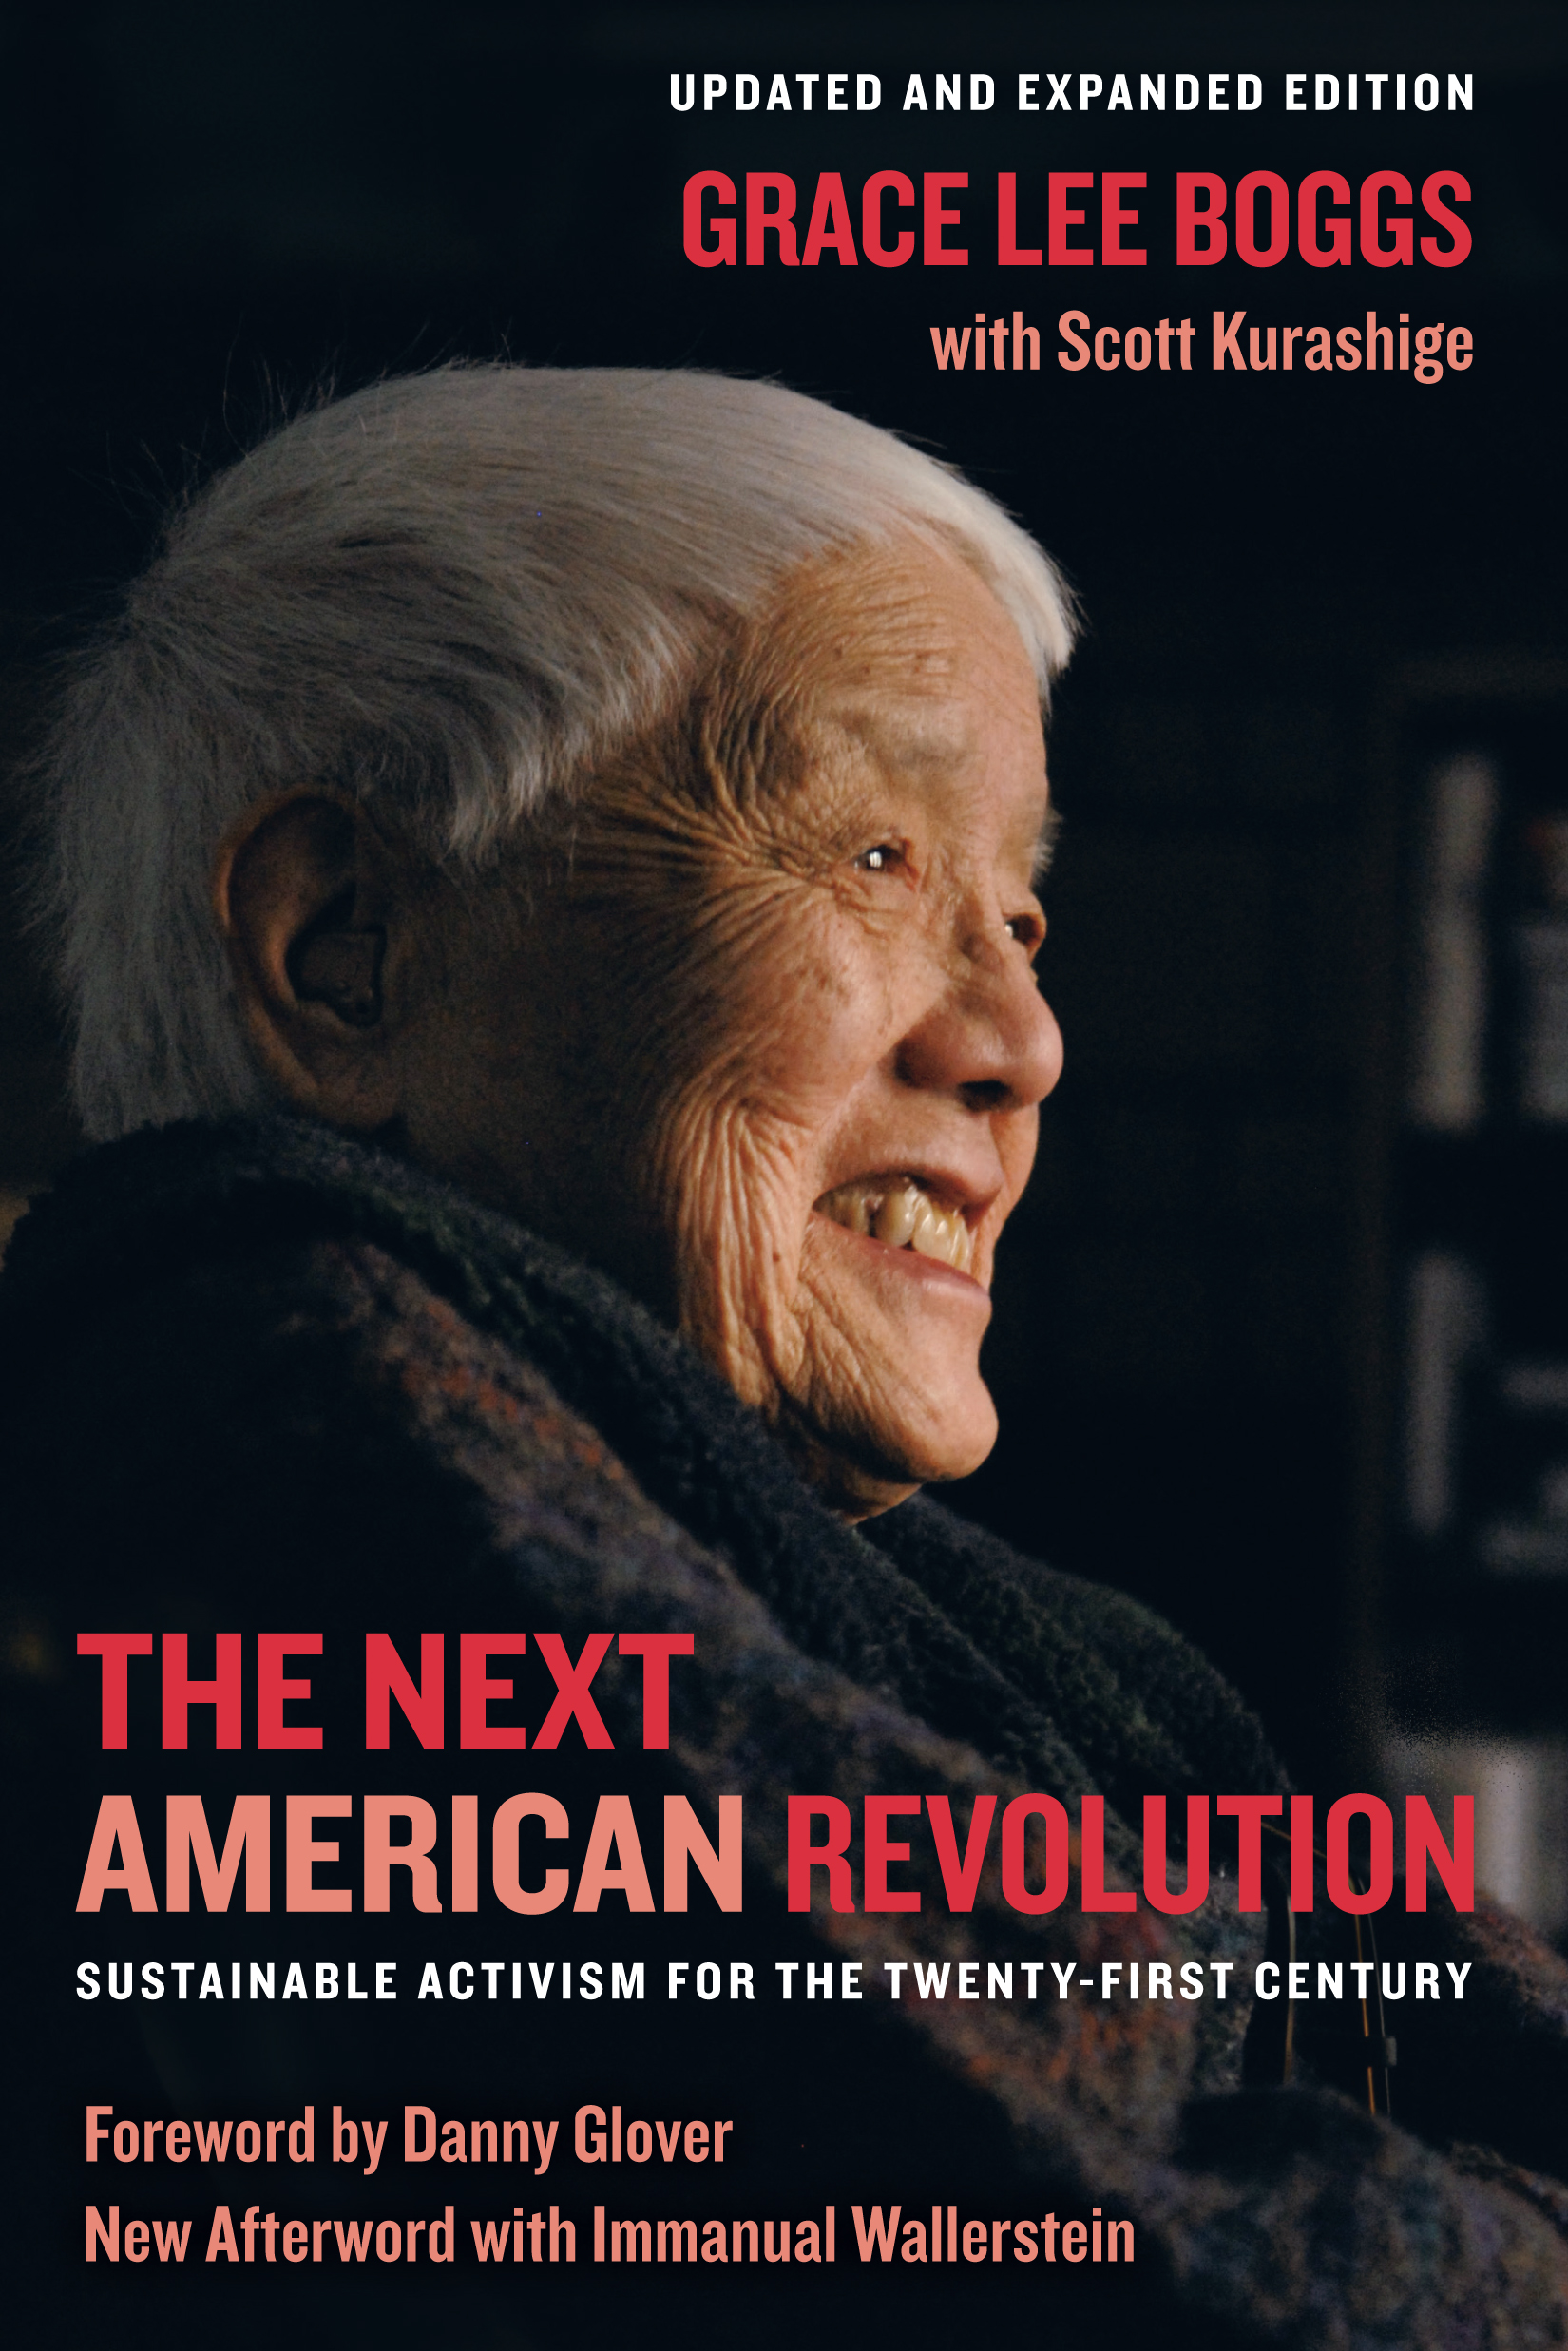 The Next American Revolution [electronic resource] : Sustainable Activism for the Twenty-First Century